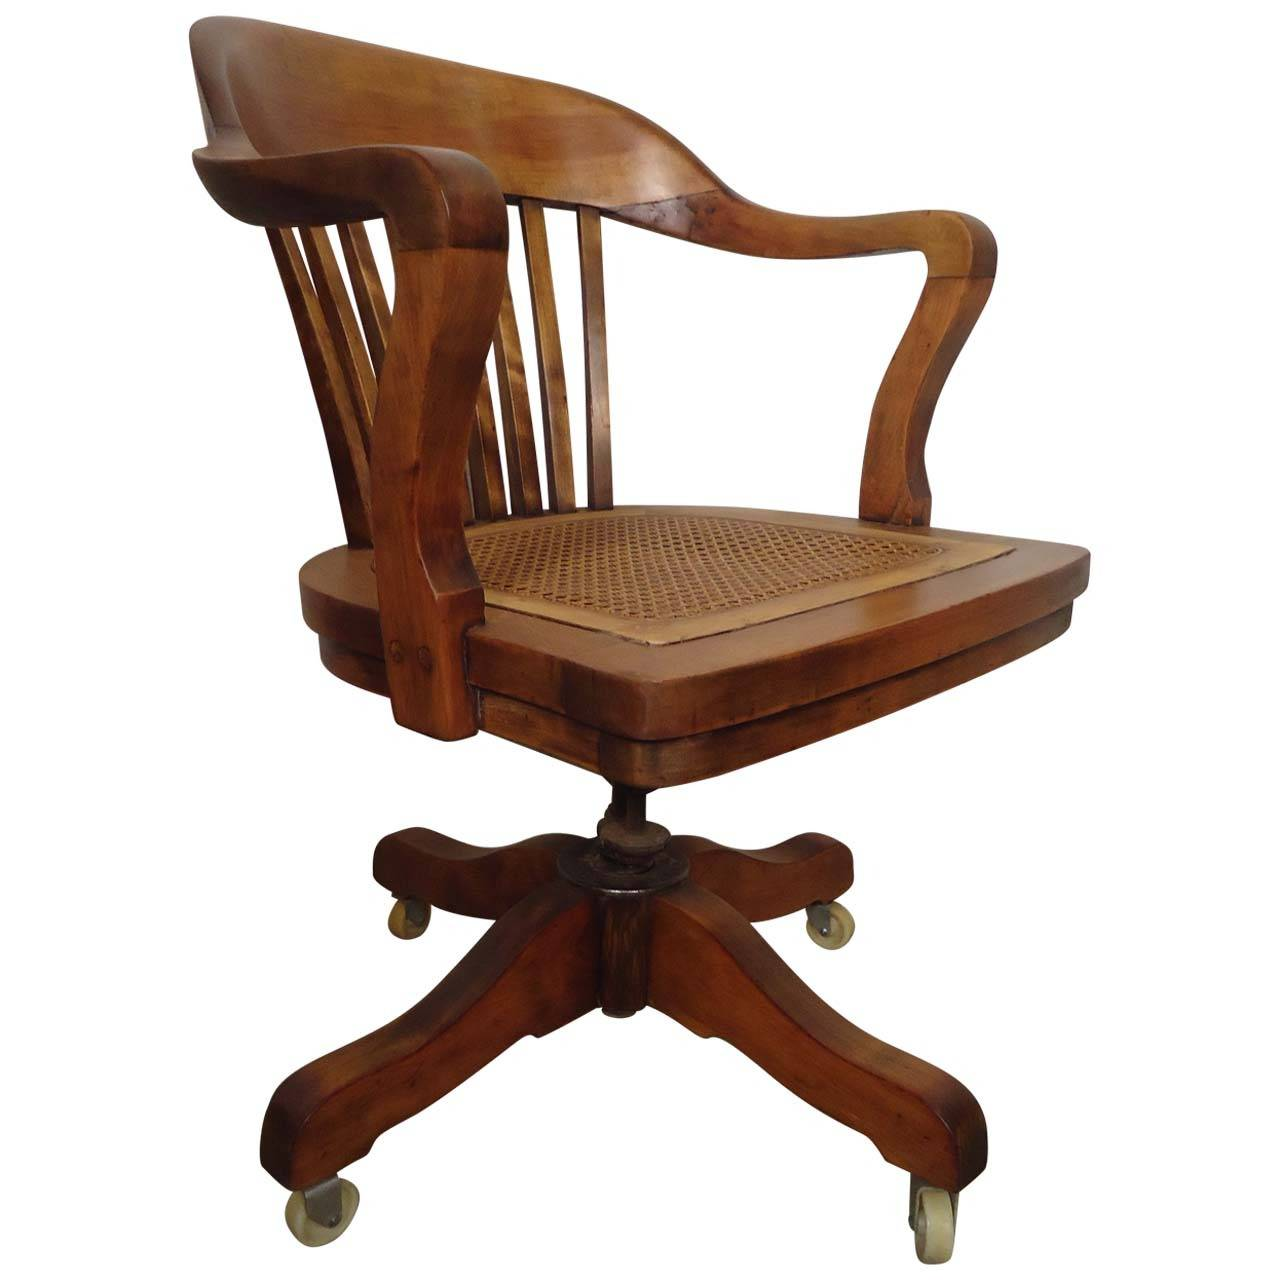 Vintage Swivel Chair Restored Vintage Swivel Desk Chair By Page For Sale At 1stdibs